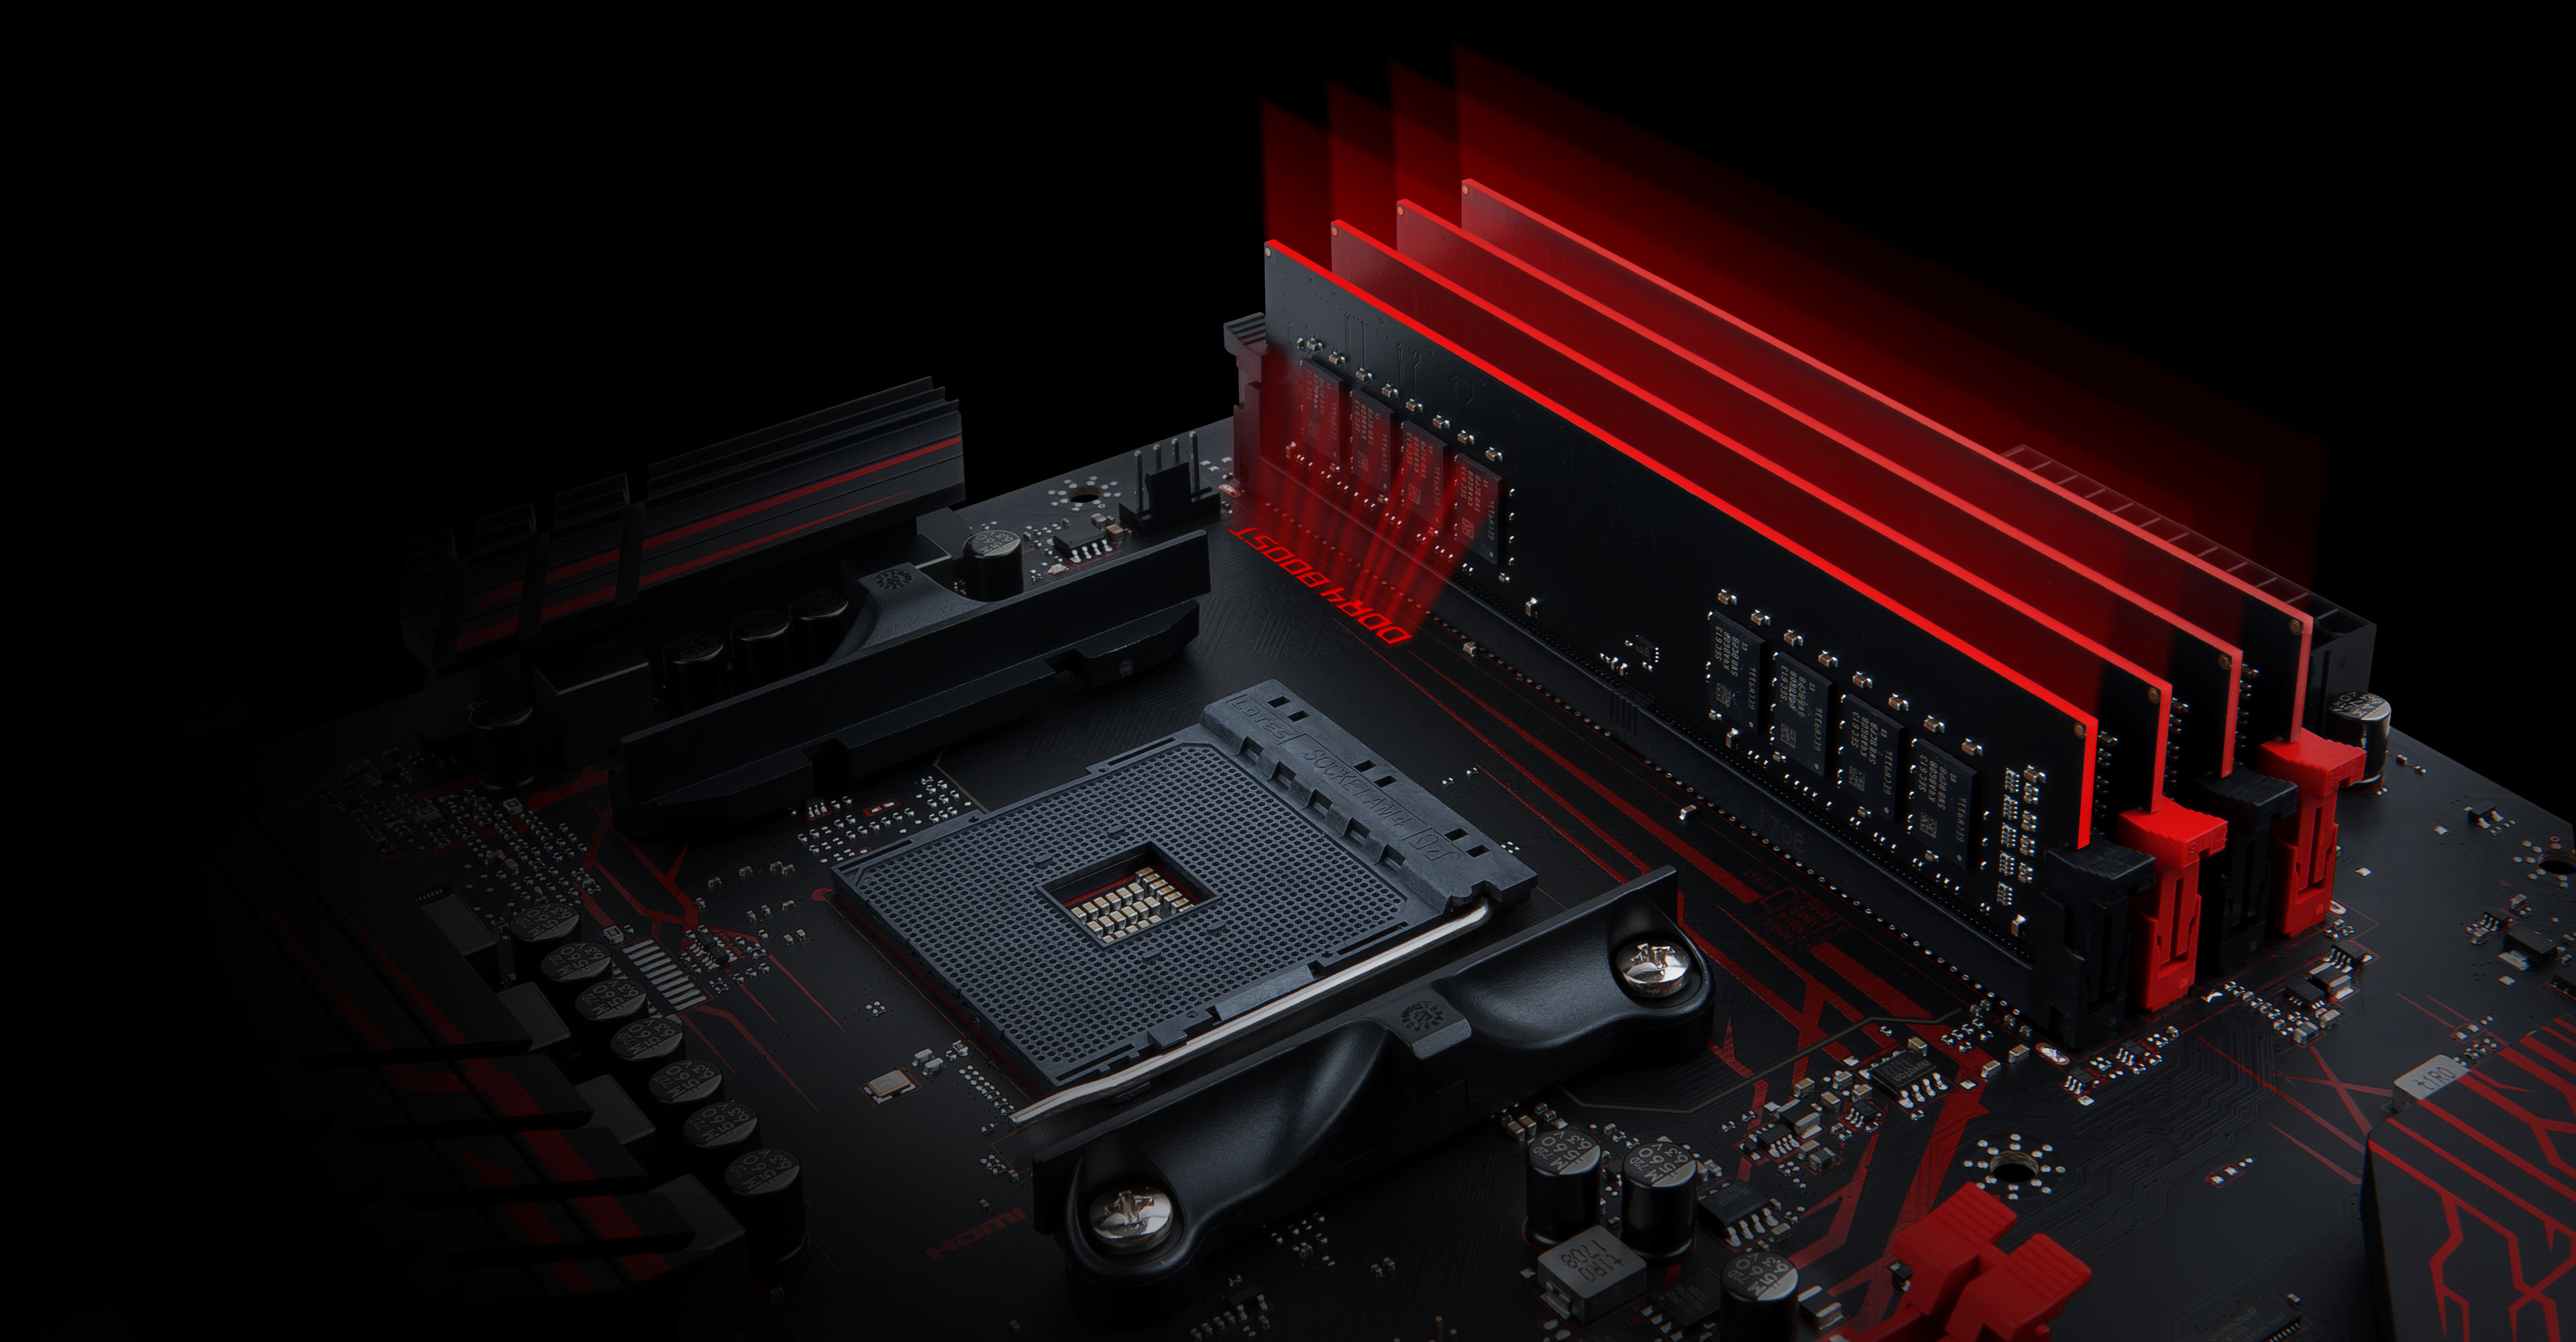 MSI motherboards are crammed with features to fuel your gaming rig s memory with more speed higher overclockability and increased stability